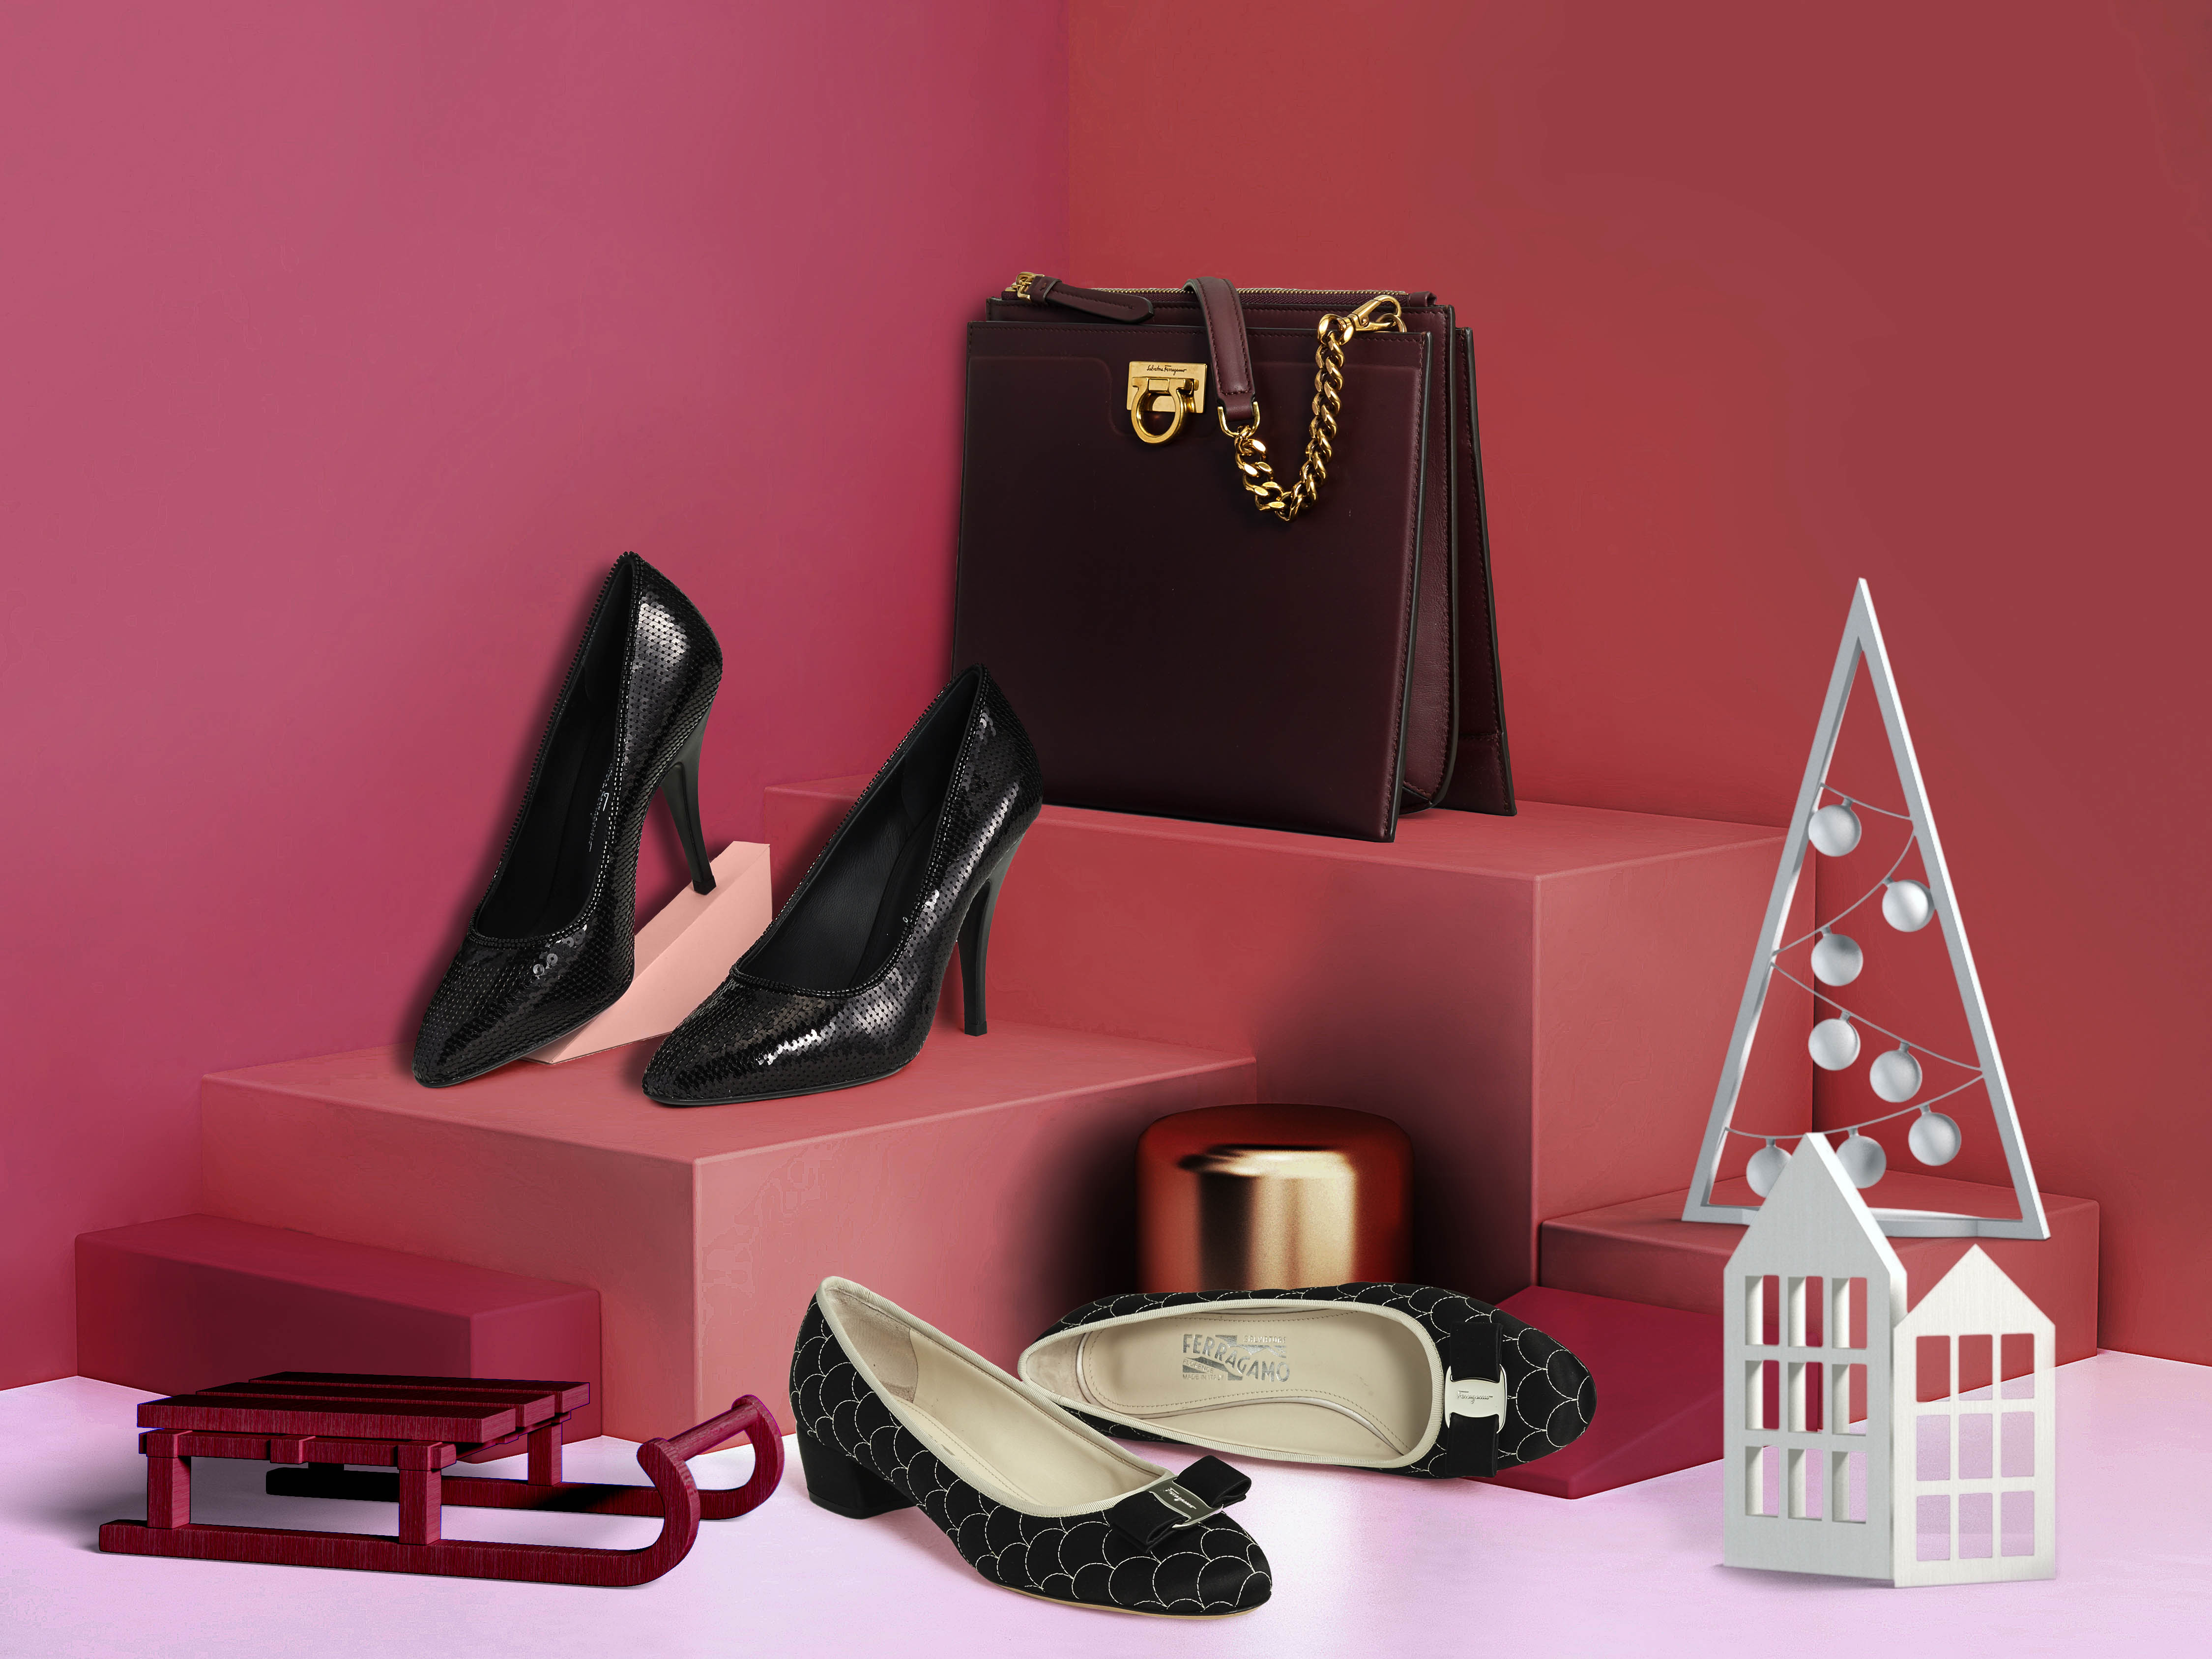 Your ultimate festive gift guide to end the year with a bang